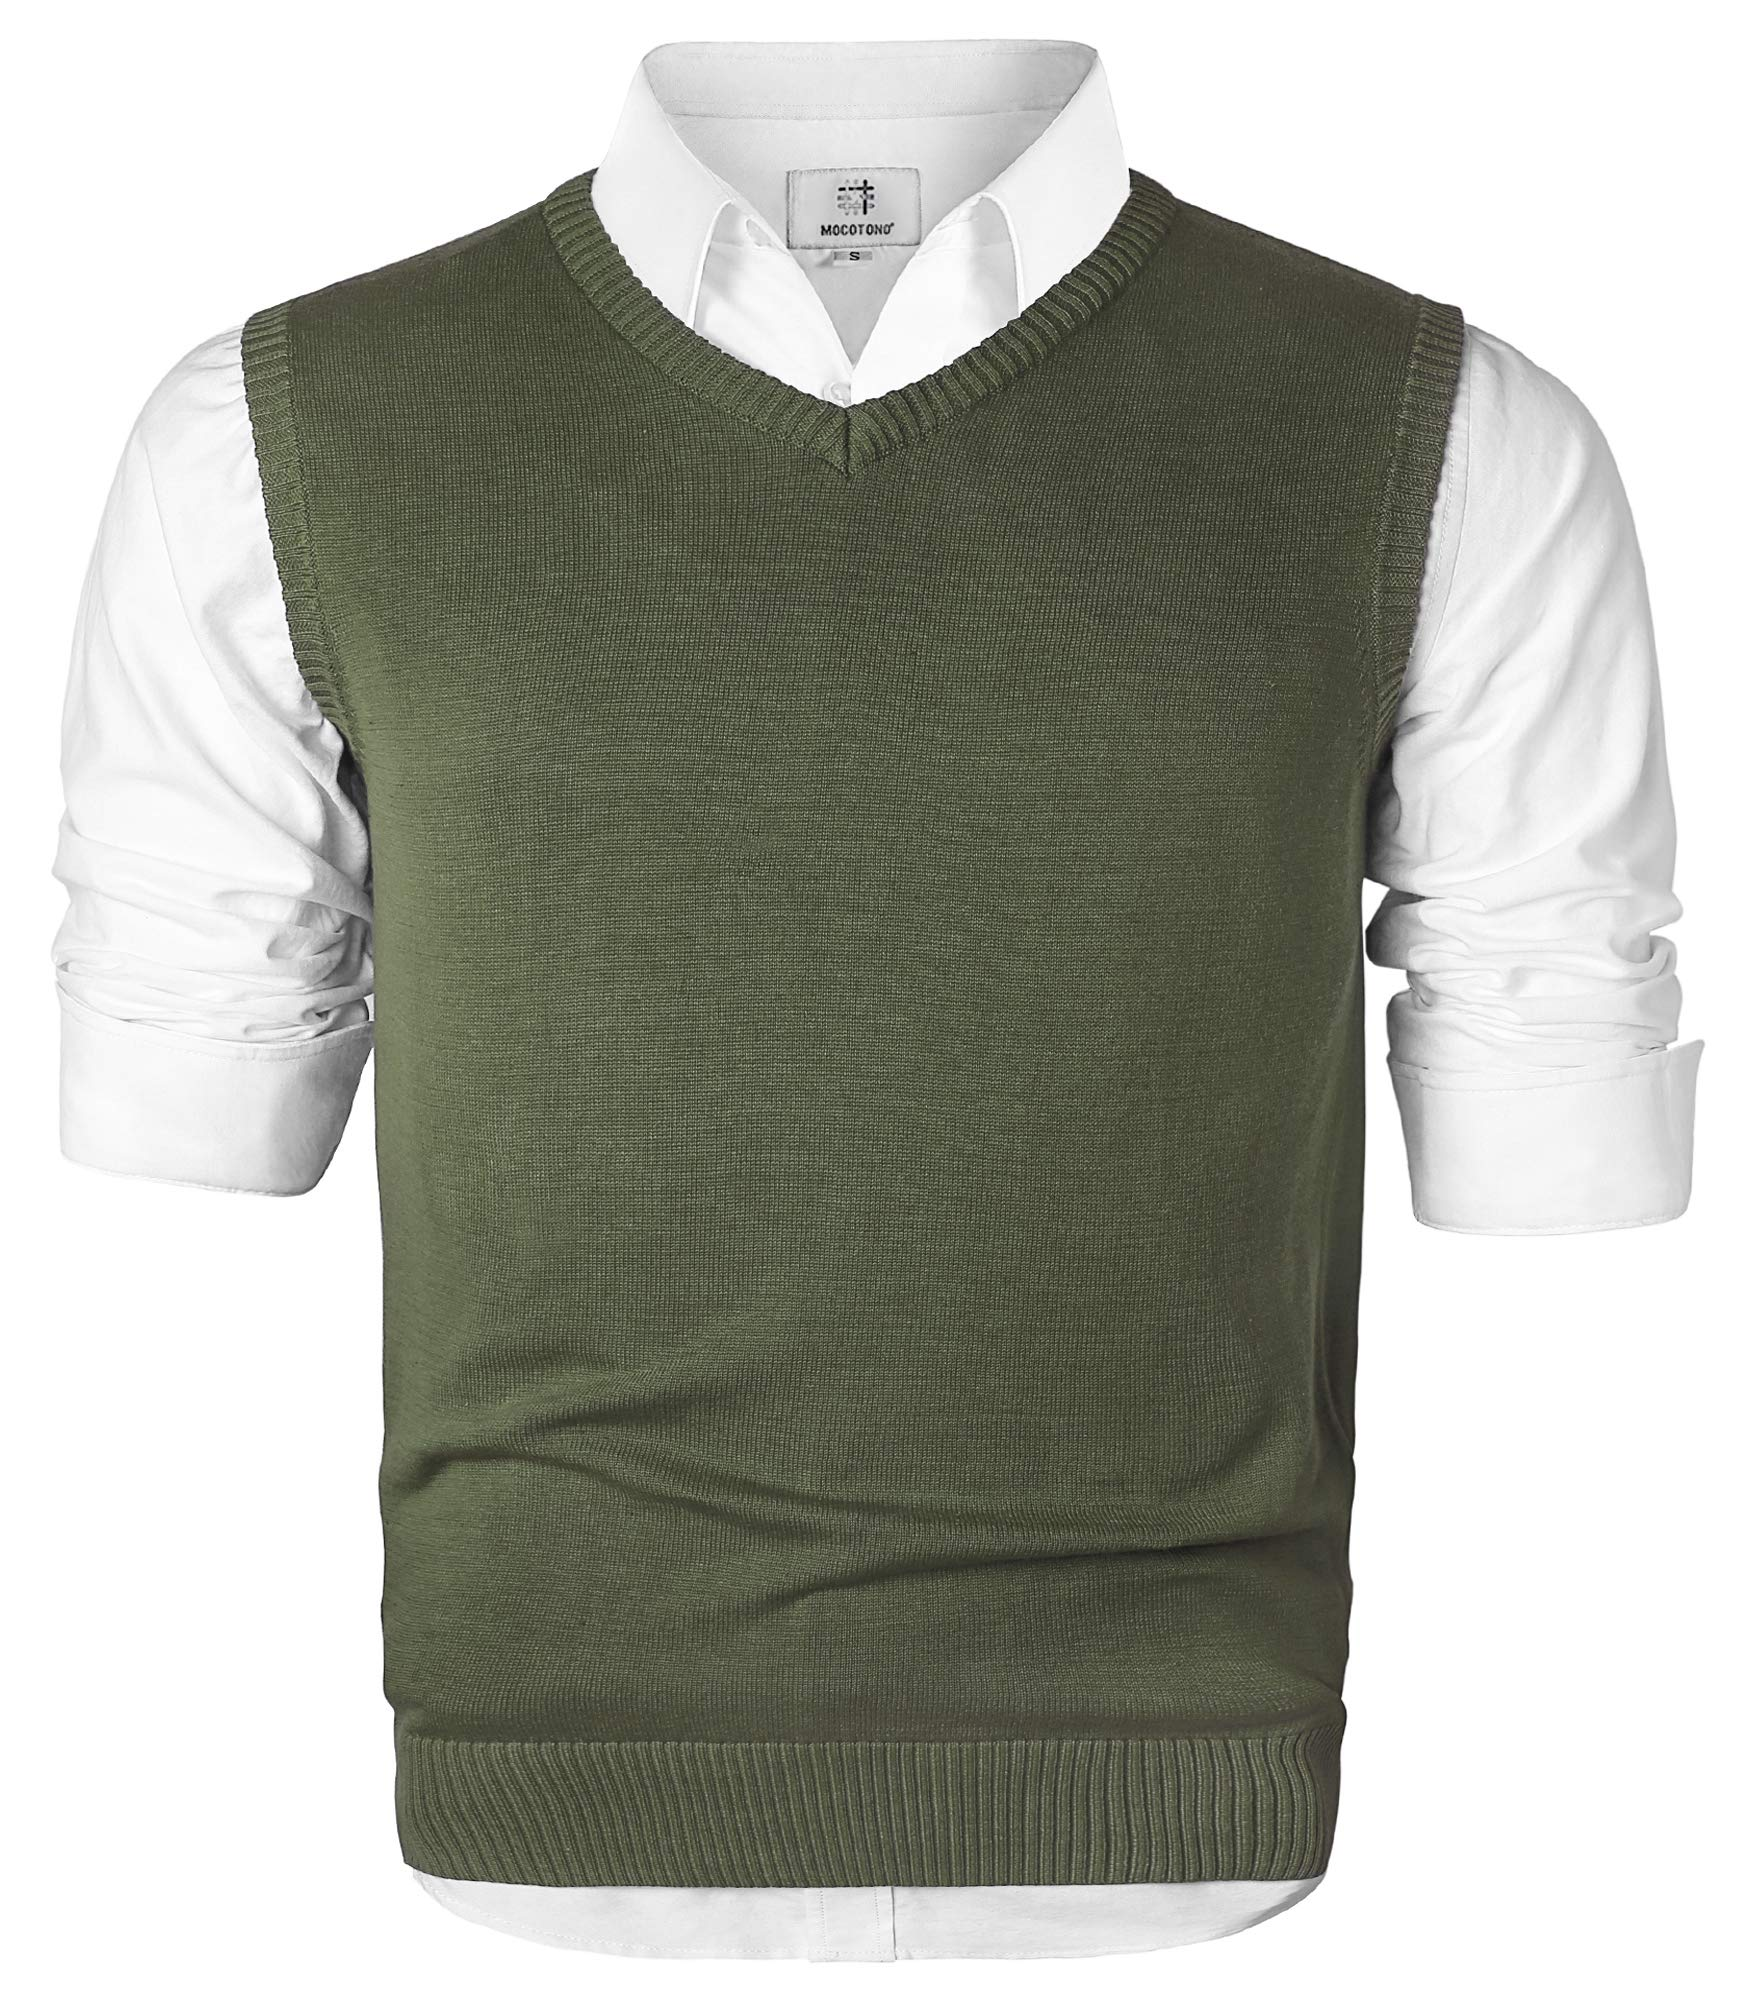 Men's V-Neck Cotton Sleeveless Sweater Casual Vest Green X-Large by MOCOTONO